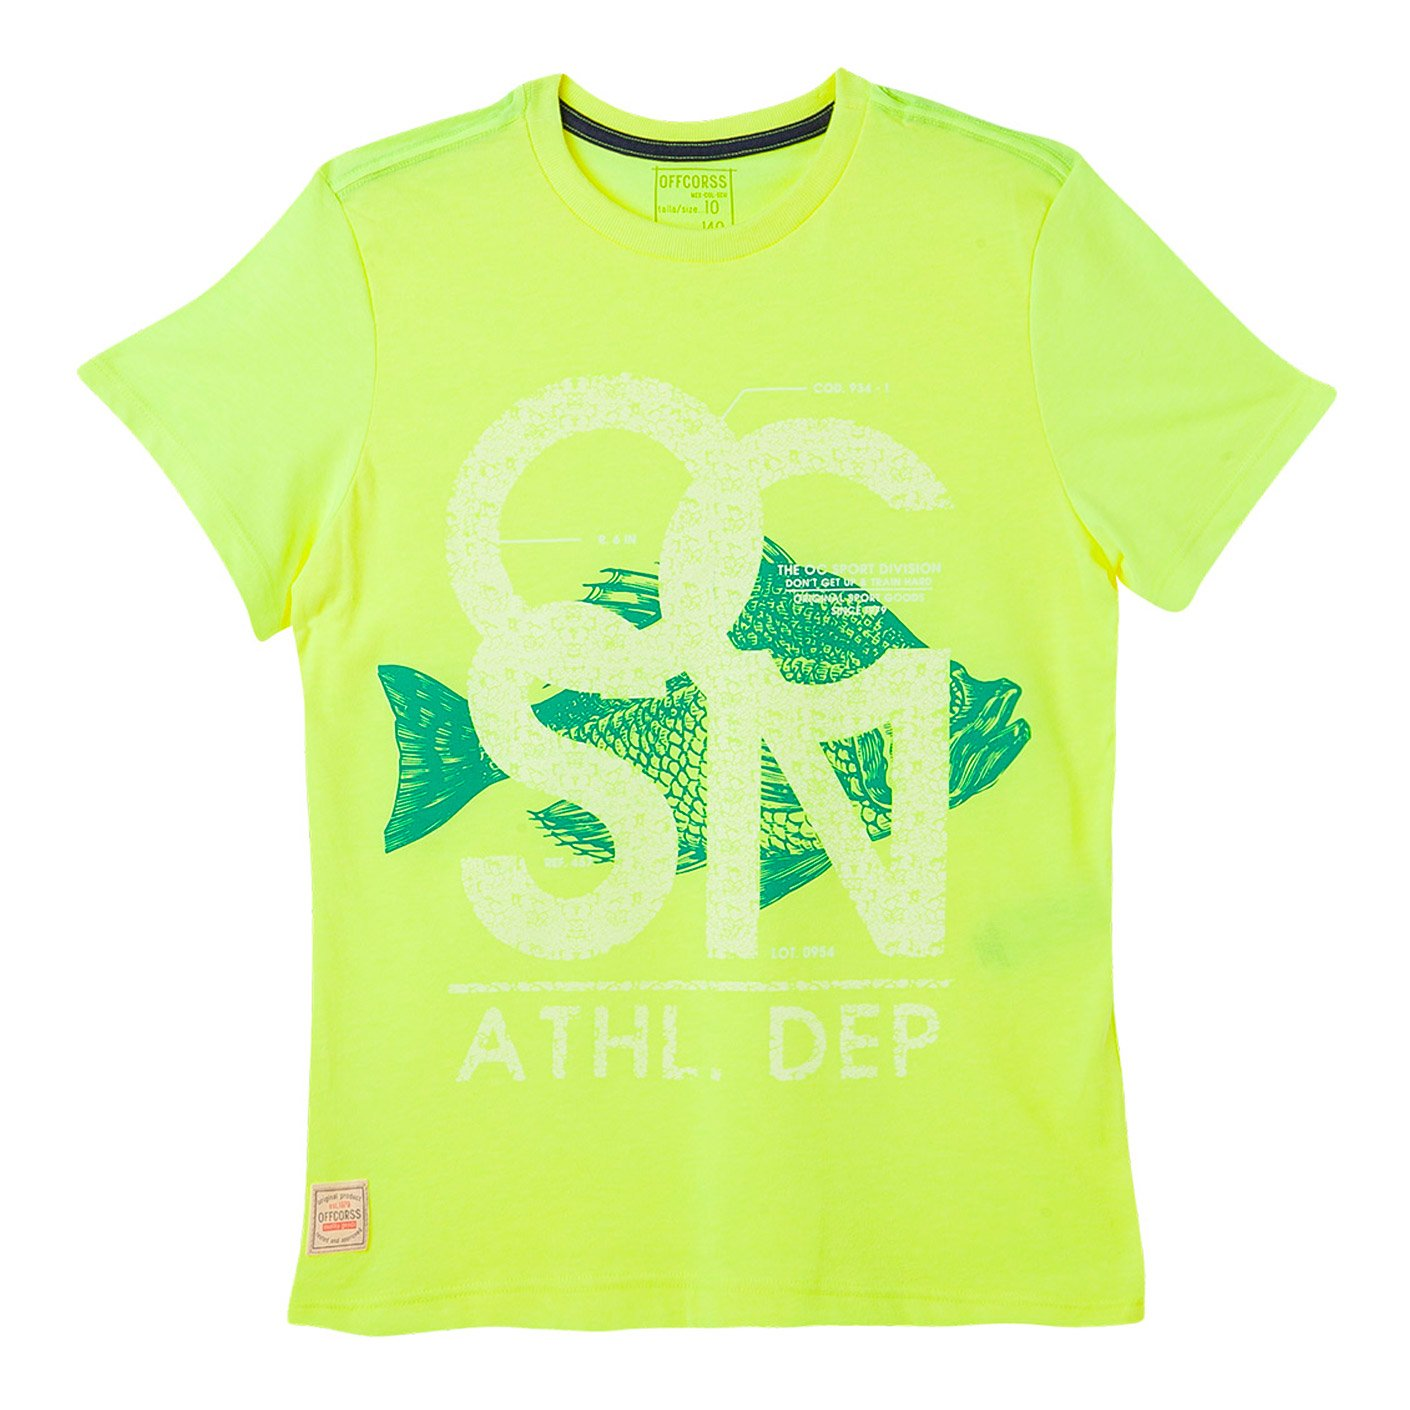 OFFCORSS Trendy Stylish Short Sleeve Tshirt for Kids Camiseta De Niños Yellow 10 by OFFCORSS (Image #1)